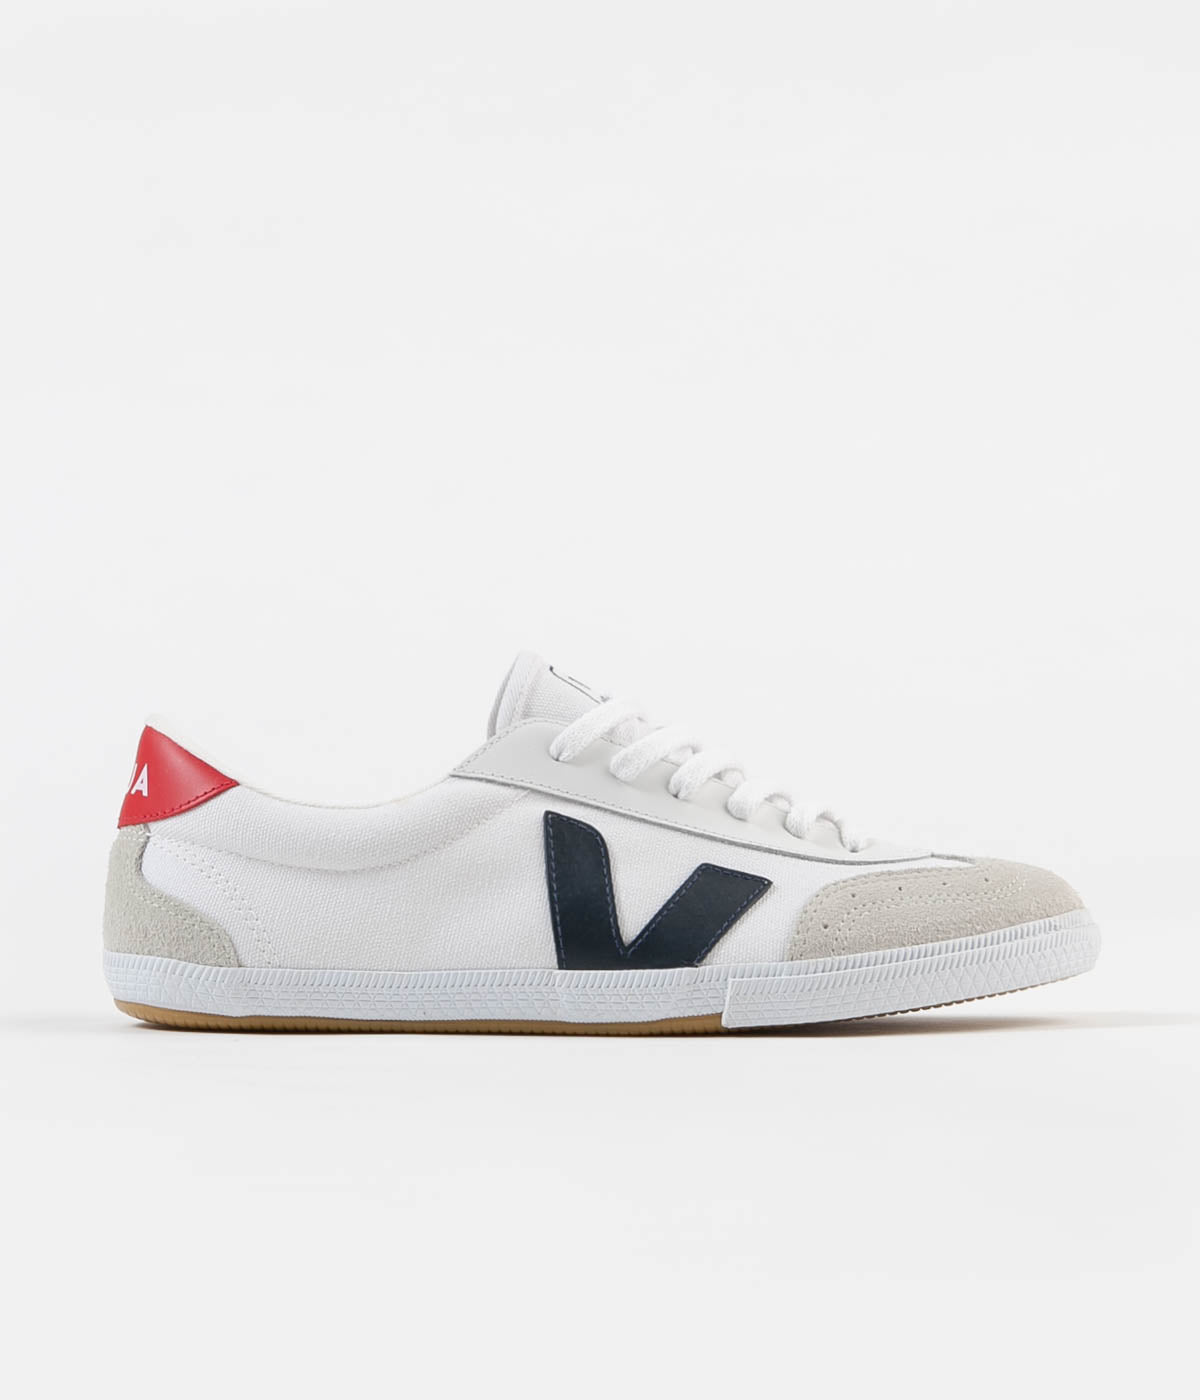 cedea8a733 Veja Volley Canvas Shoes - White / Nautico / Pekin | Always in Colour